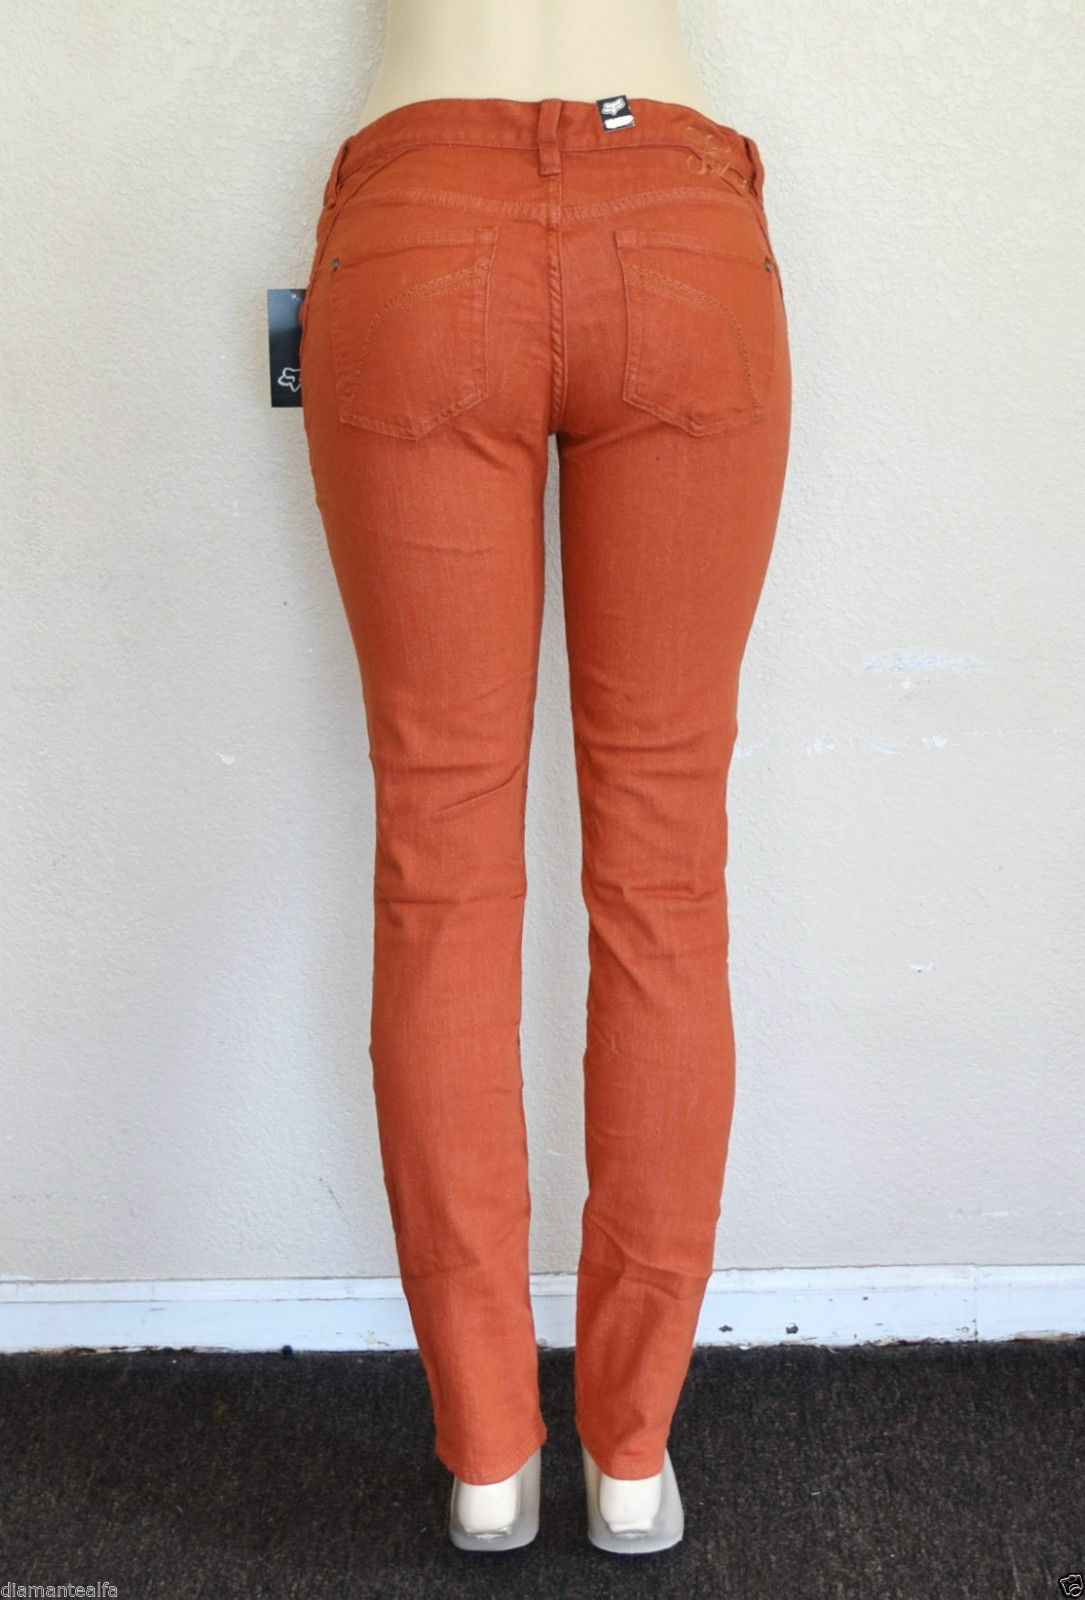 Fox Racing Women's Ripper Jeggings - Burnt orange sz 7 28